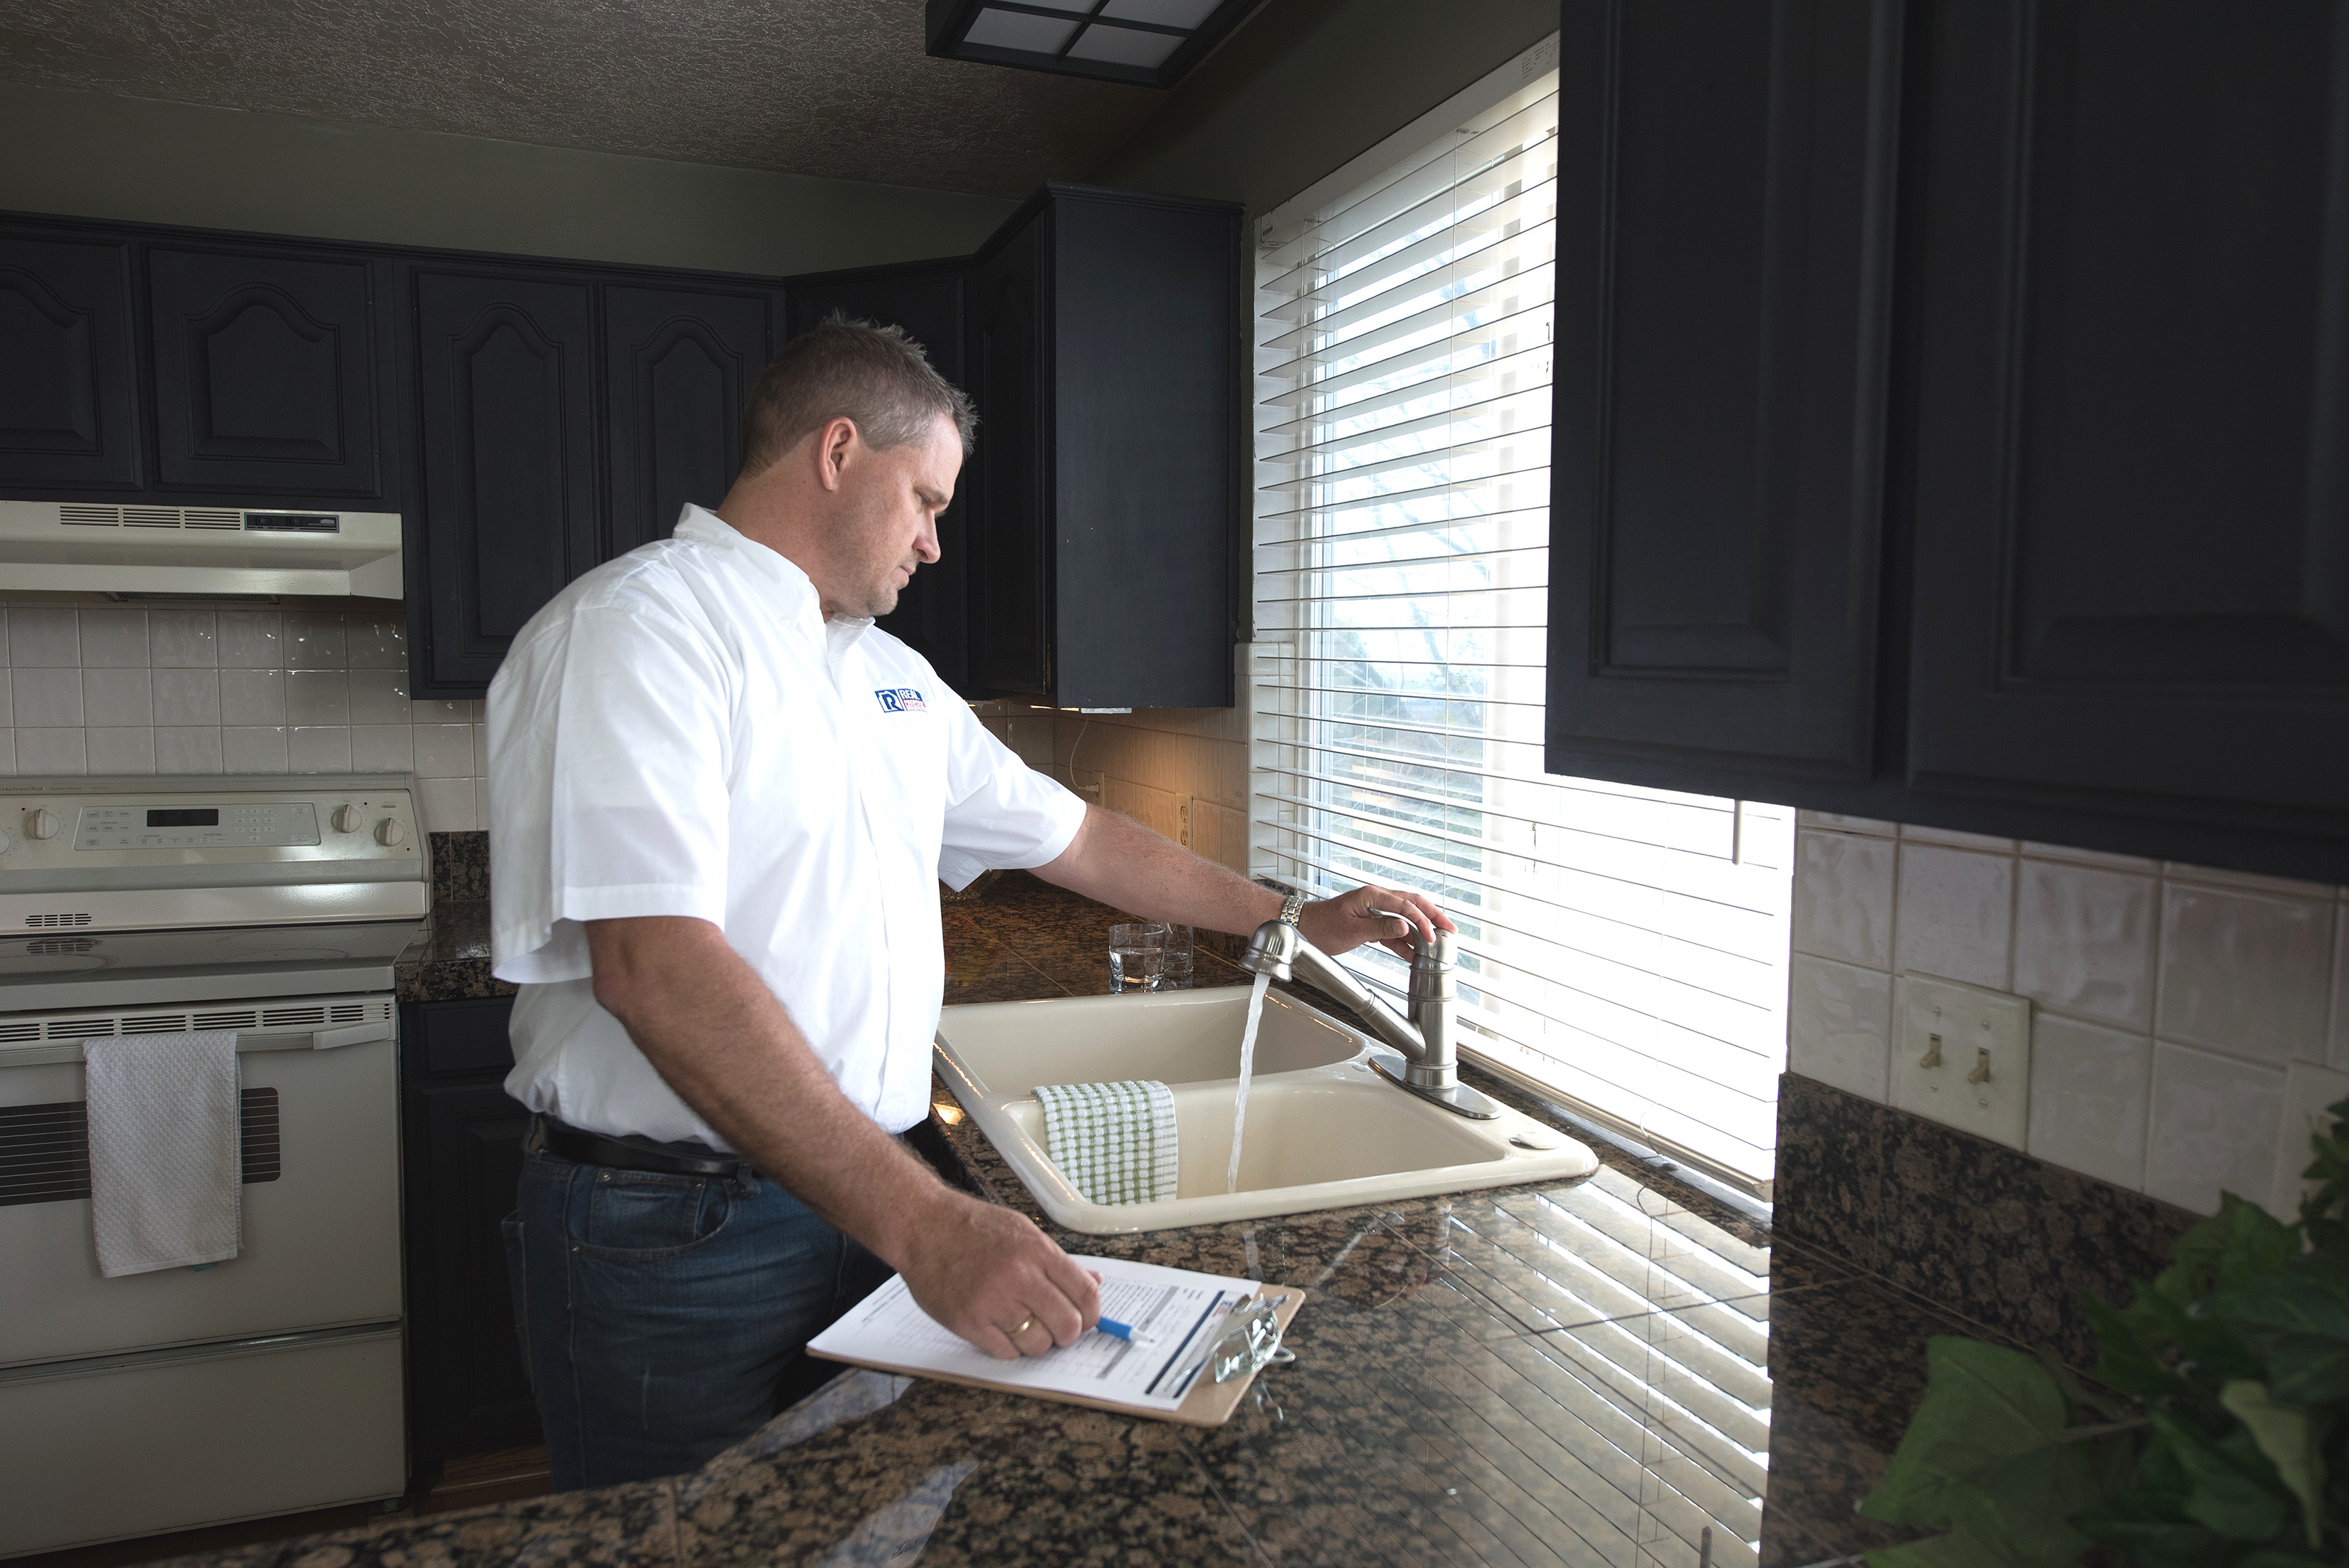 Real Property Management Baton Rouge staff inspecting the sink